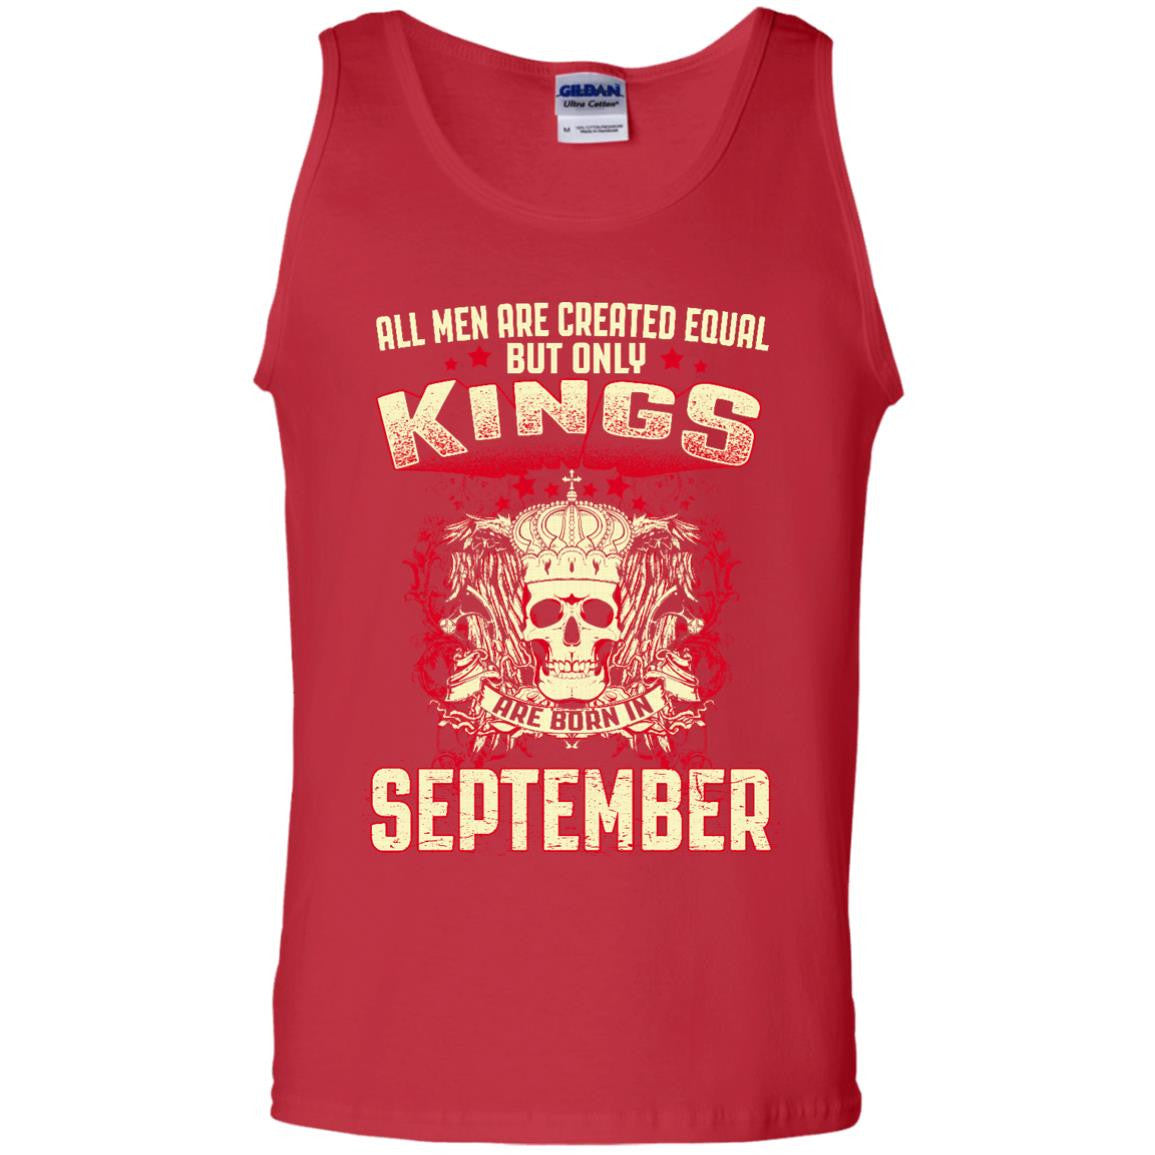 T-shirt All men are created equal but only legends were born in september BB111